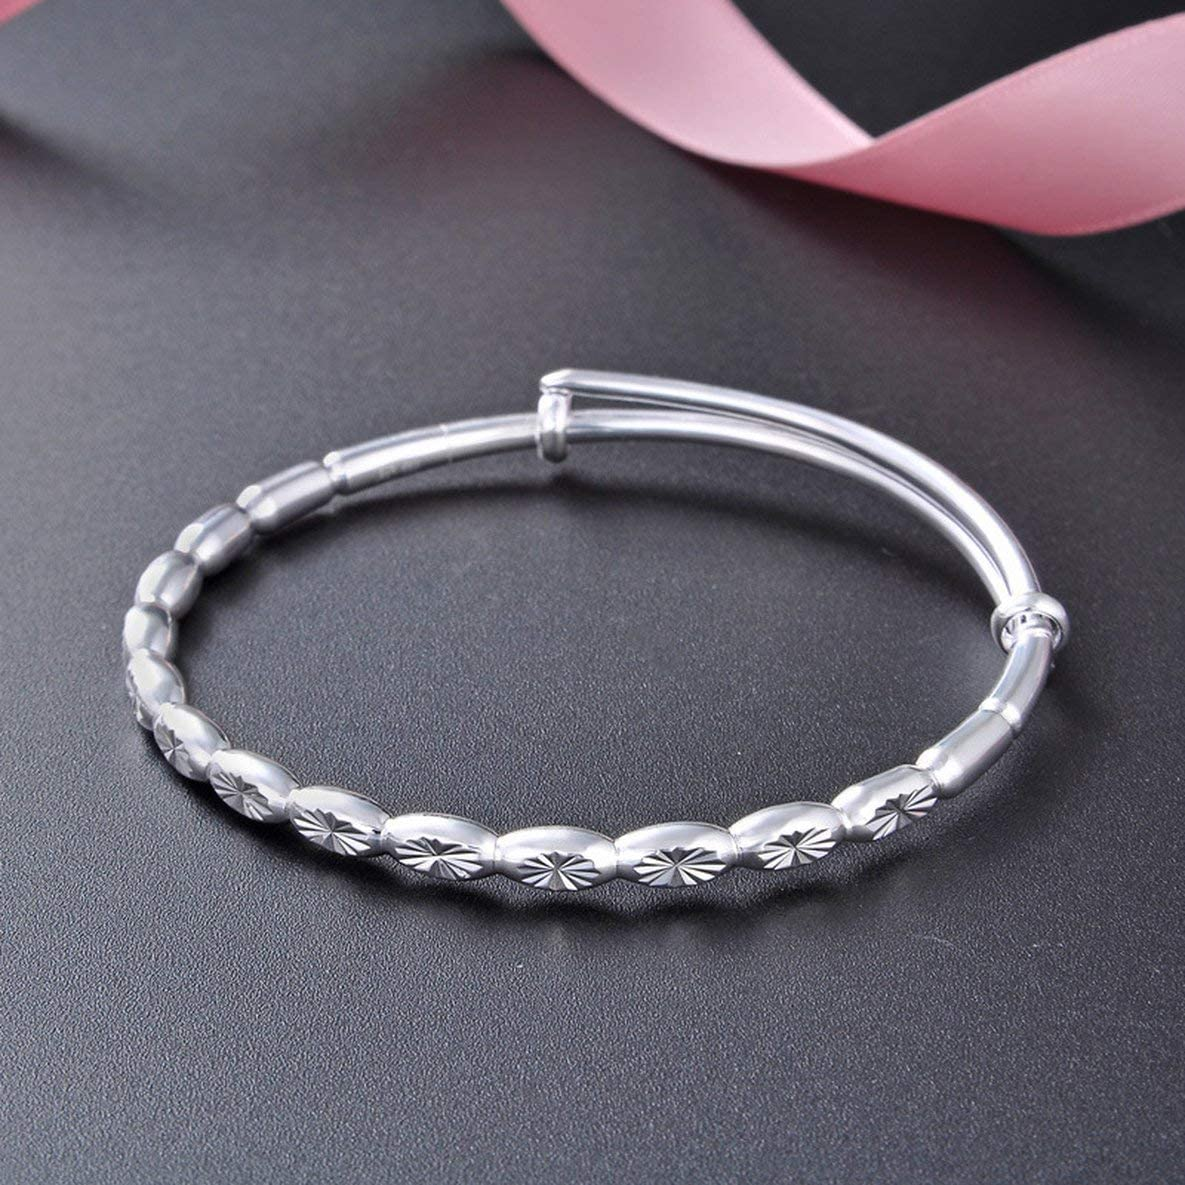 Jewelry Beautifully Engraved Pattern Popular Over item handling ☆ brand in the world for Bracelet Classic Charm